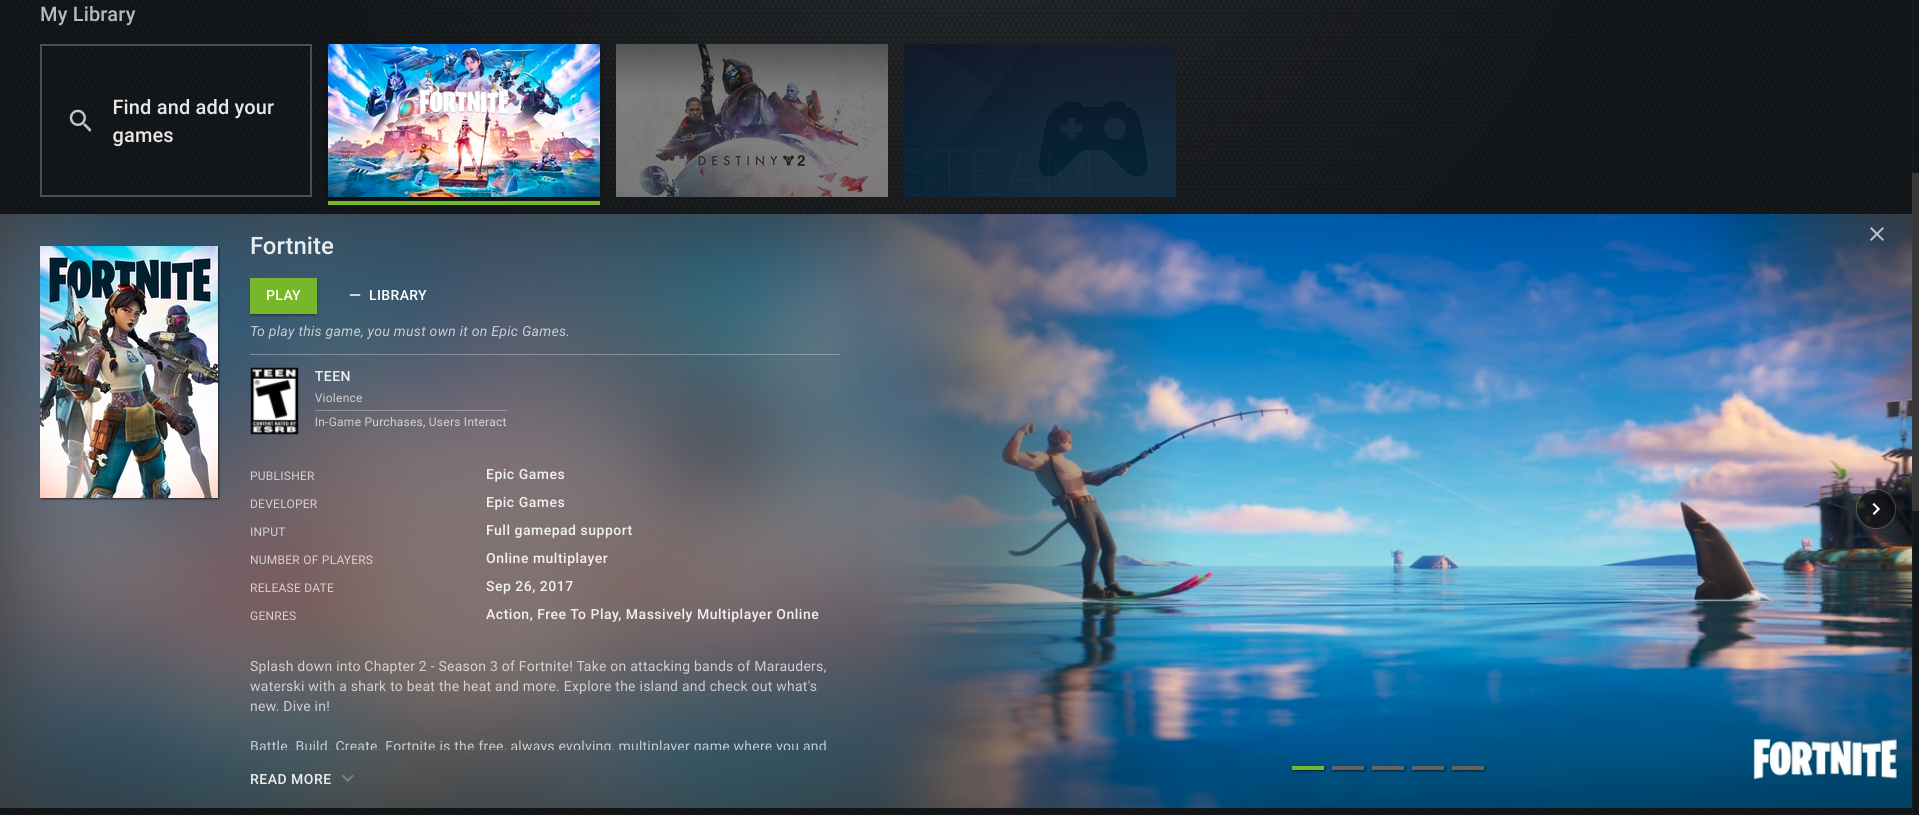 Fortnite Chromebook GeForce Now Library